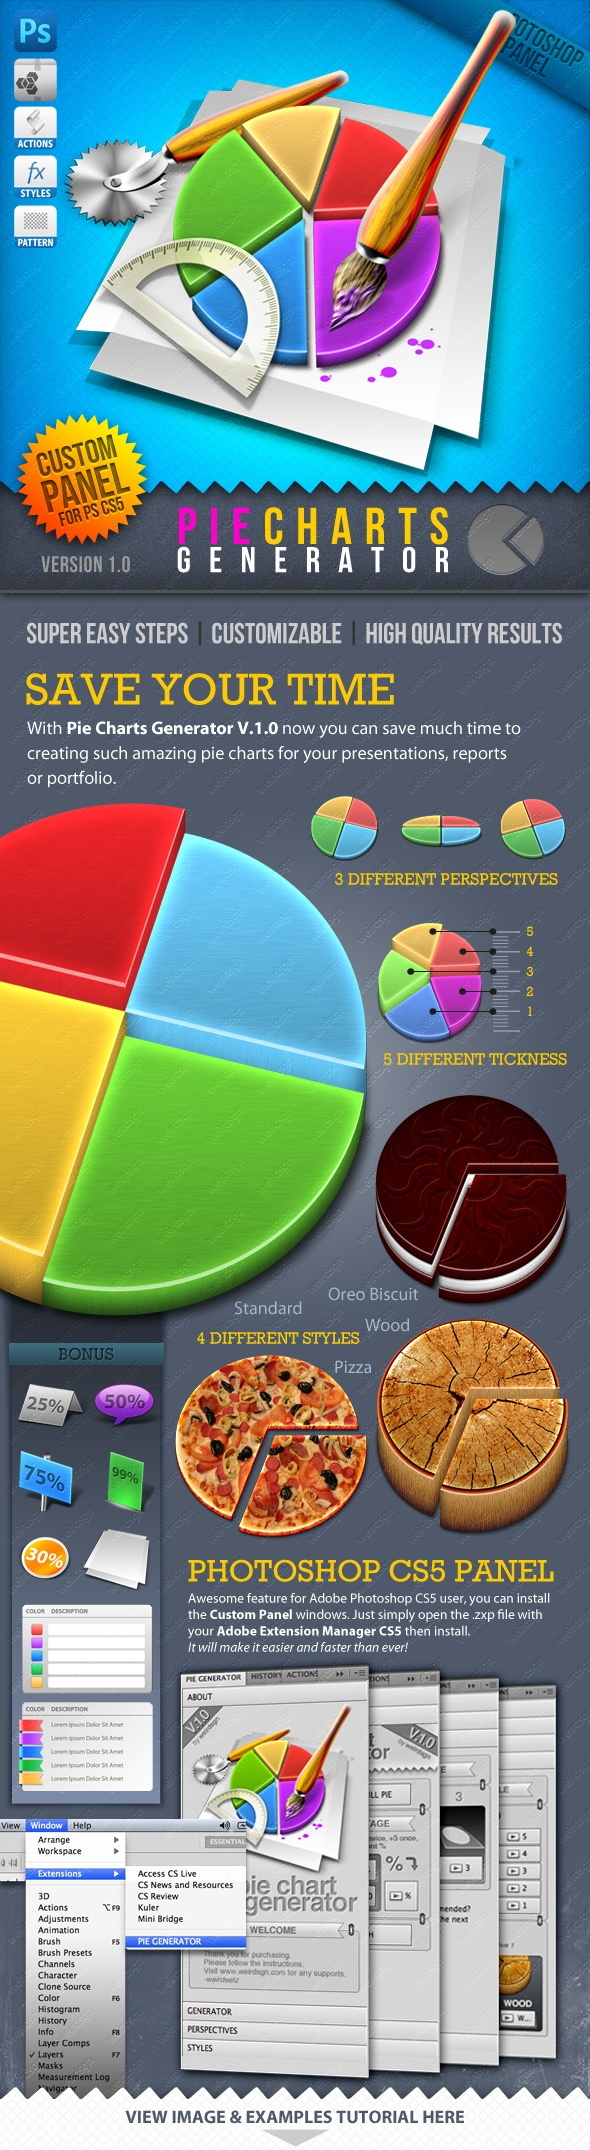 3D Pie Charts Generator - choose style: standard, Oreo Biscuit, wood and Pizza. Make cool, easy piecharts